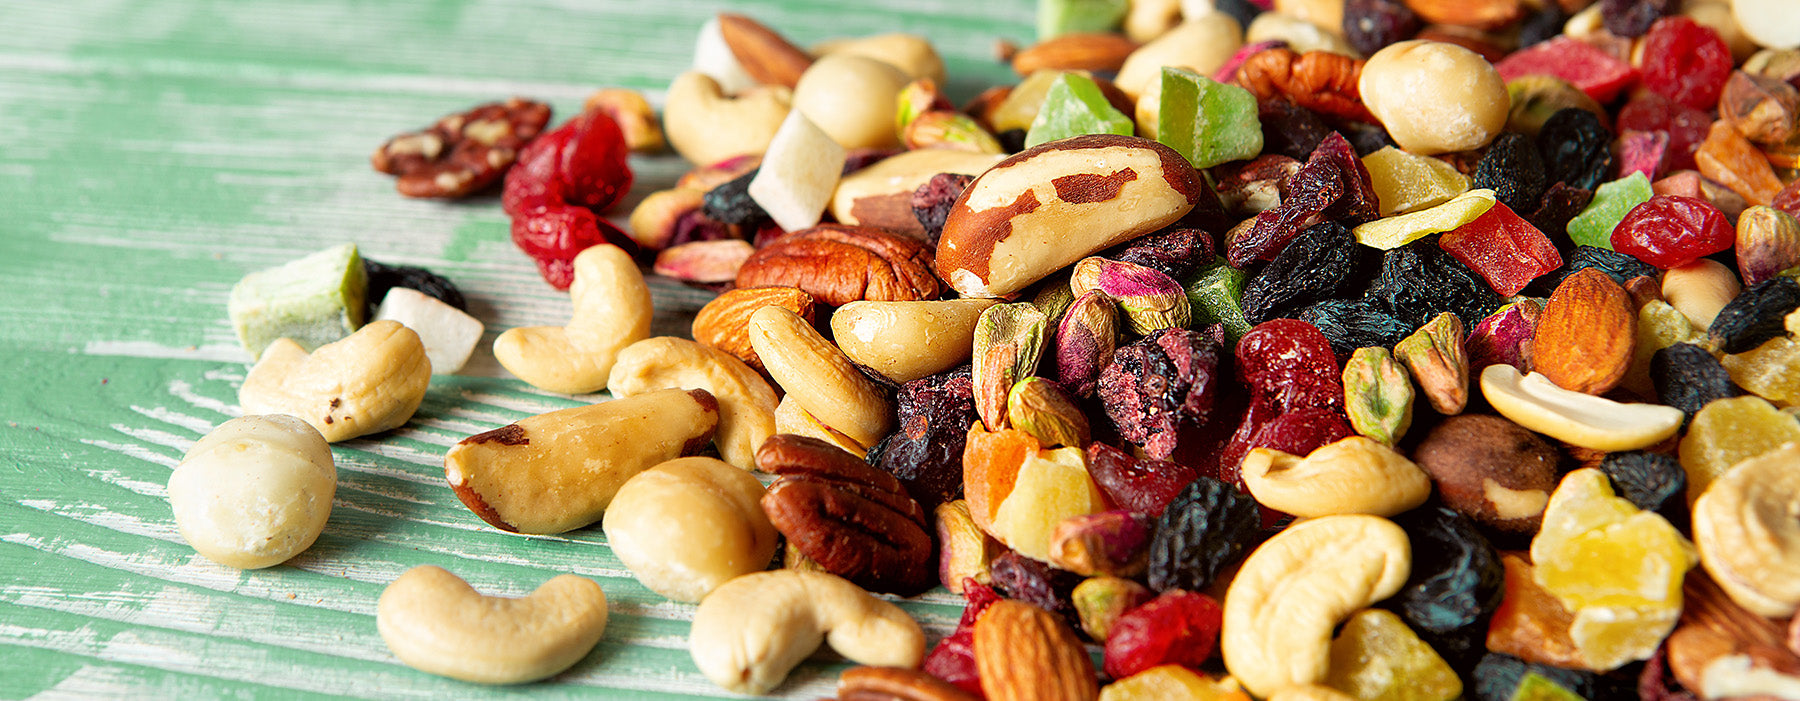 Best quality dried nuts and fruits. Shop online. Natural and organic